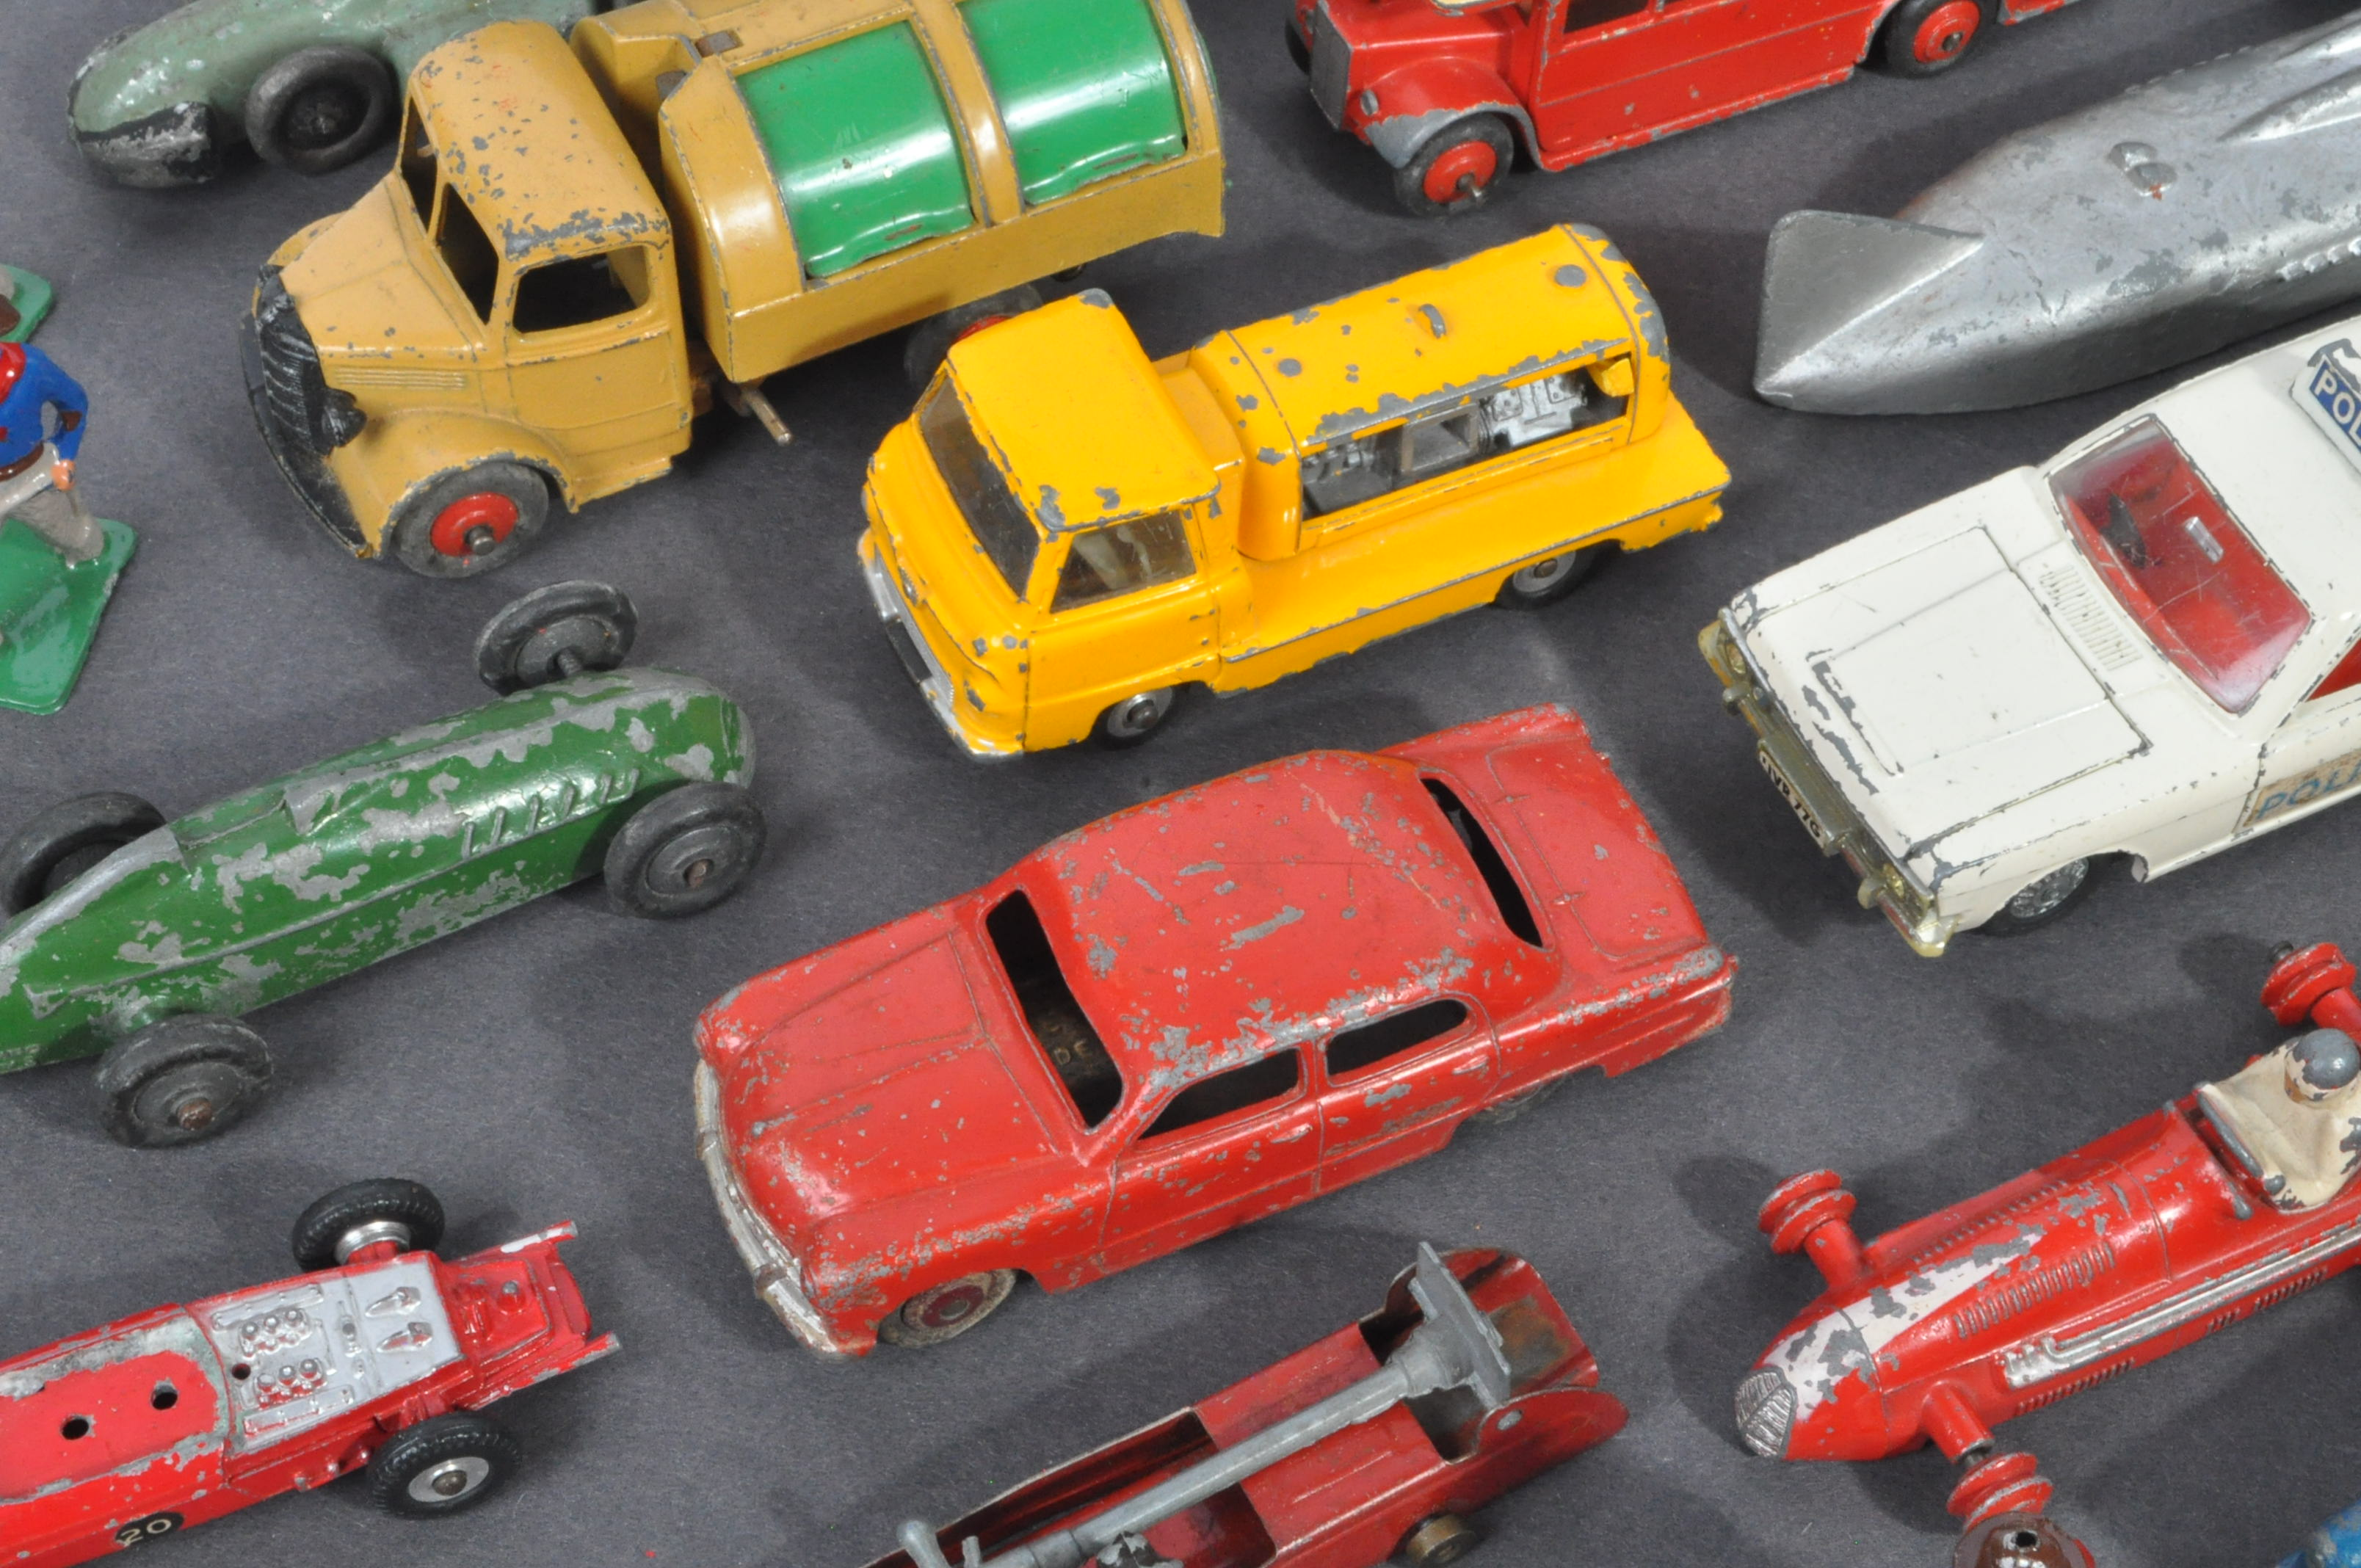 LARGE COLLECTION OF DINKY & OTHER DIECAST MODELS - Image 6 of 6